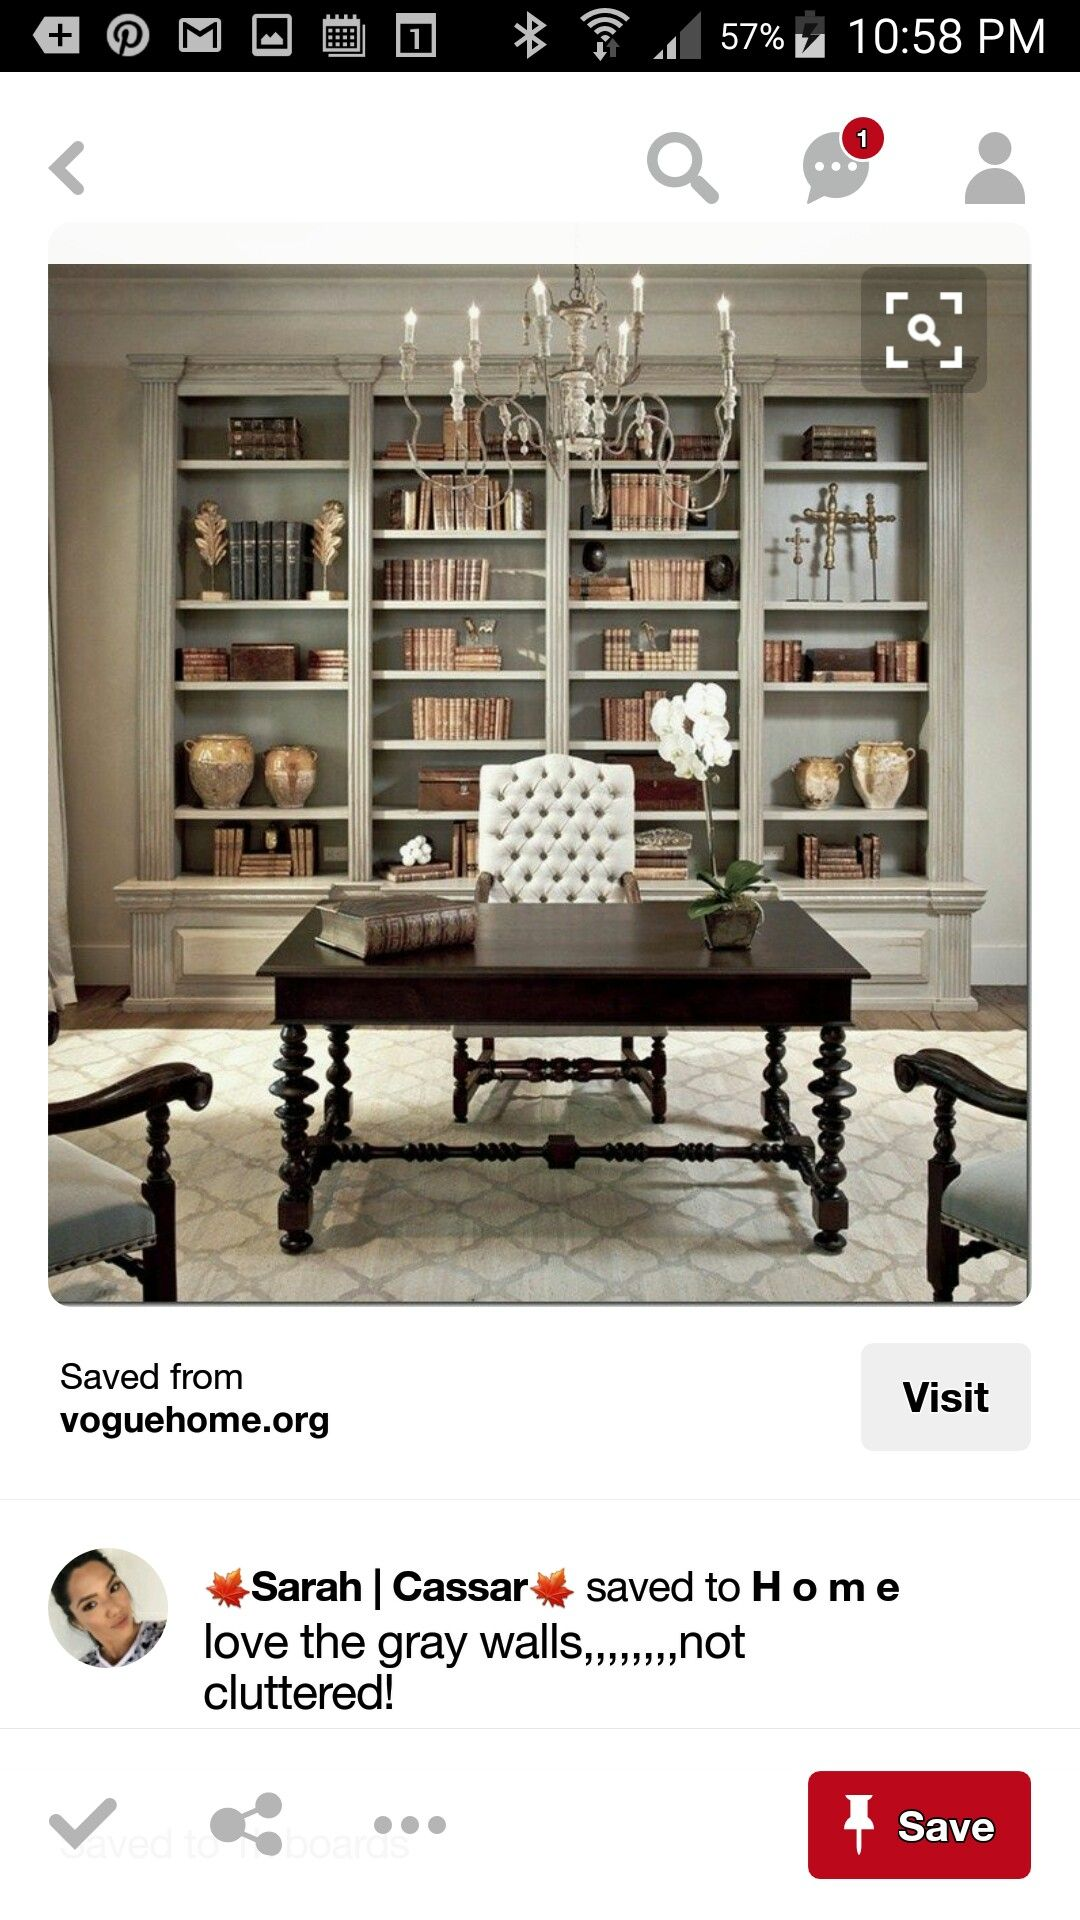 Dining Room Idea   Dens/libraries/offices   Sherwin Williams   Ermine   Chic,  Elegant French Office With Tan Walls Paint Color, Distressed Gray  Built Ins, ...